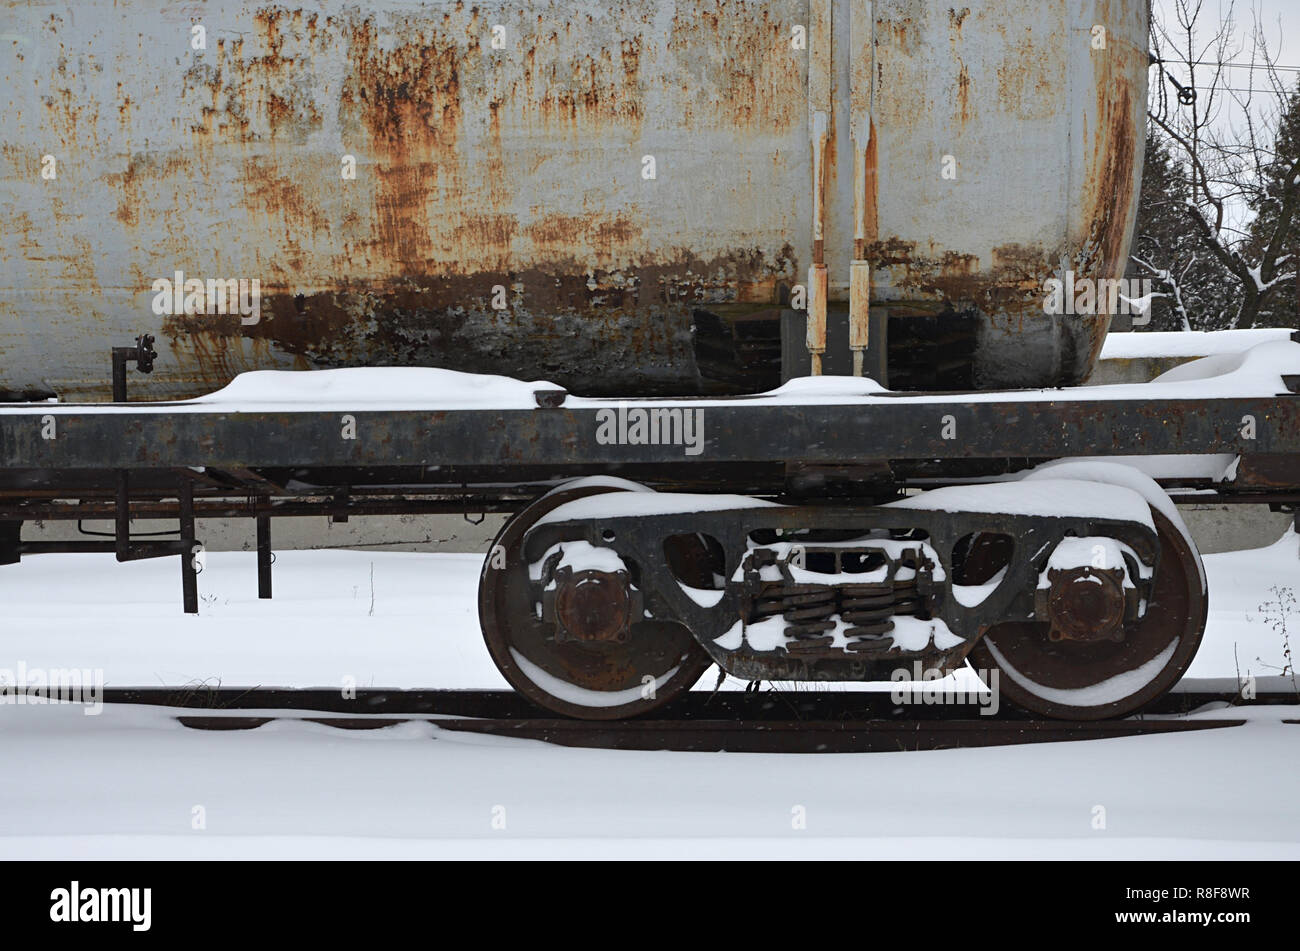 Detailed photo of snowy frozen railway freight car  A